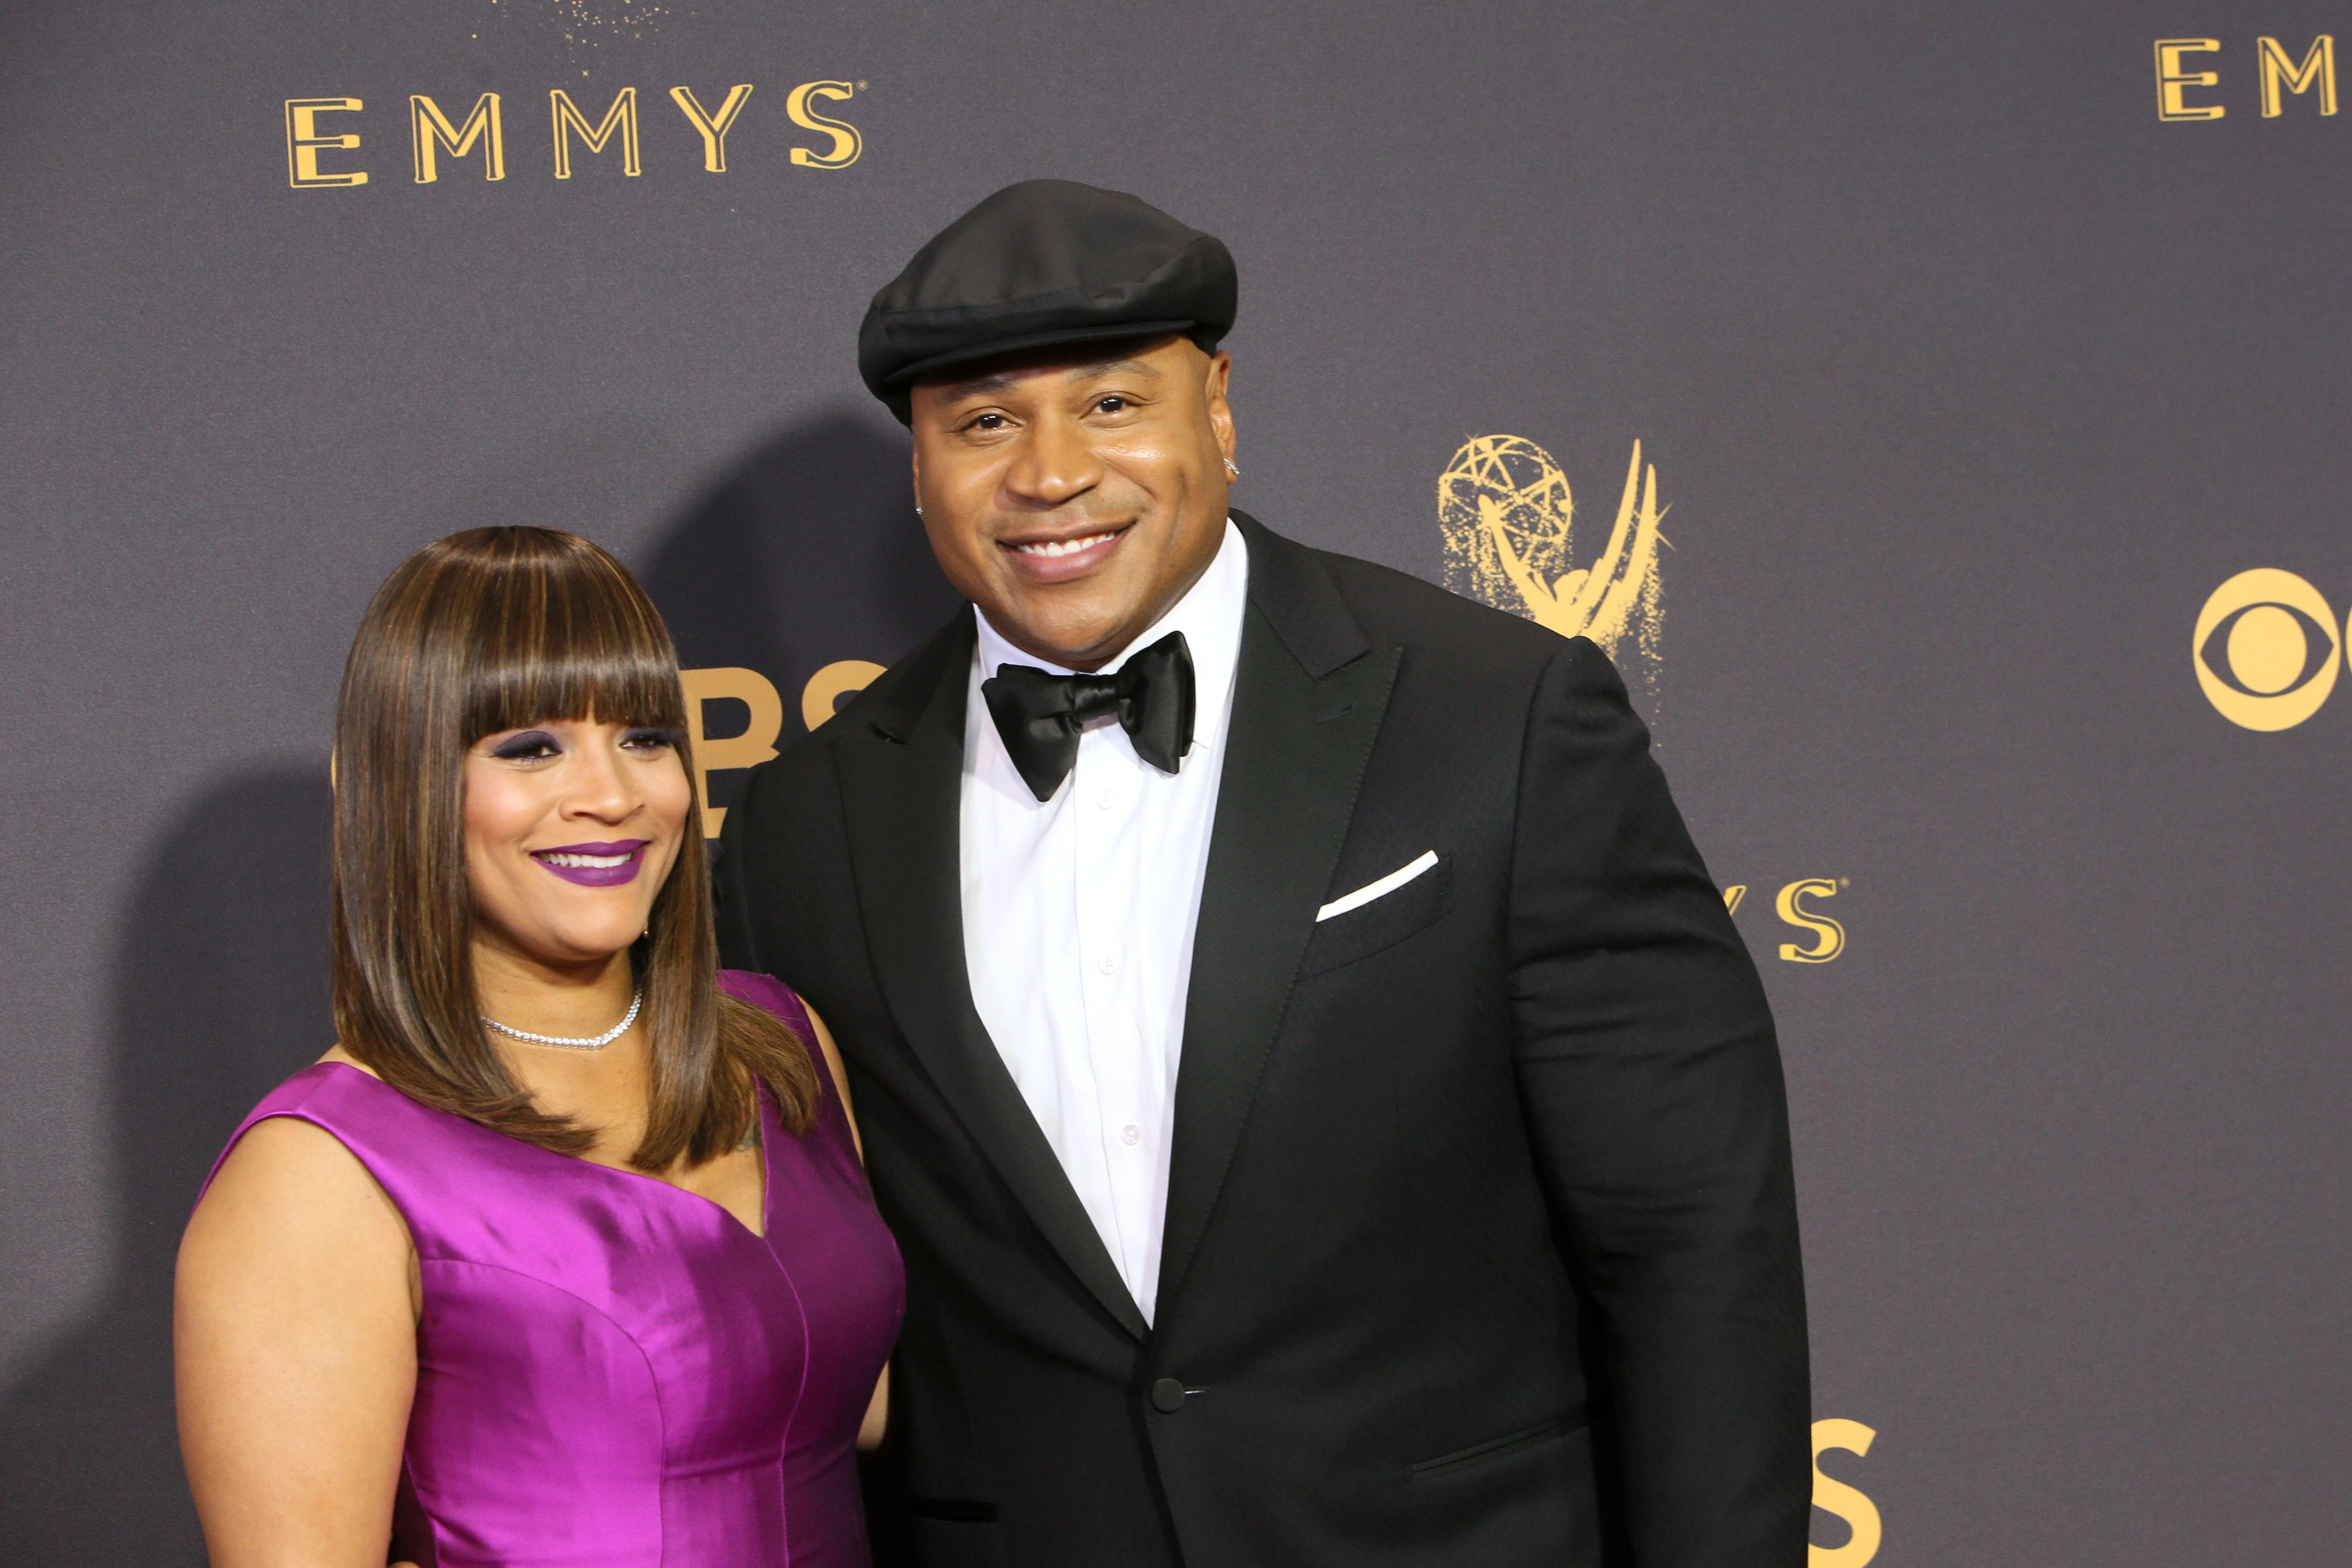 LL Cool J and wife Simone Smith attend the Emmy Awards | Source: Getty Images/GlobalImagesUkraine